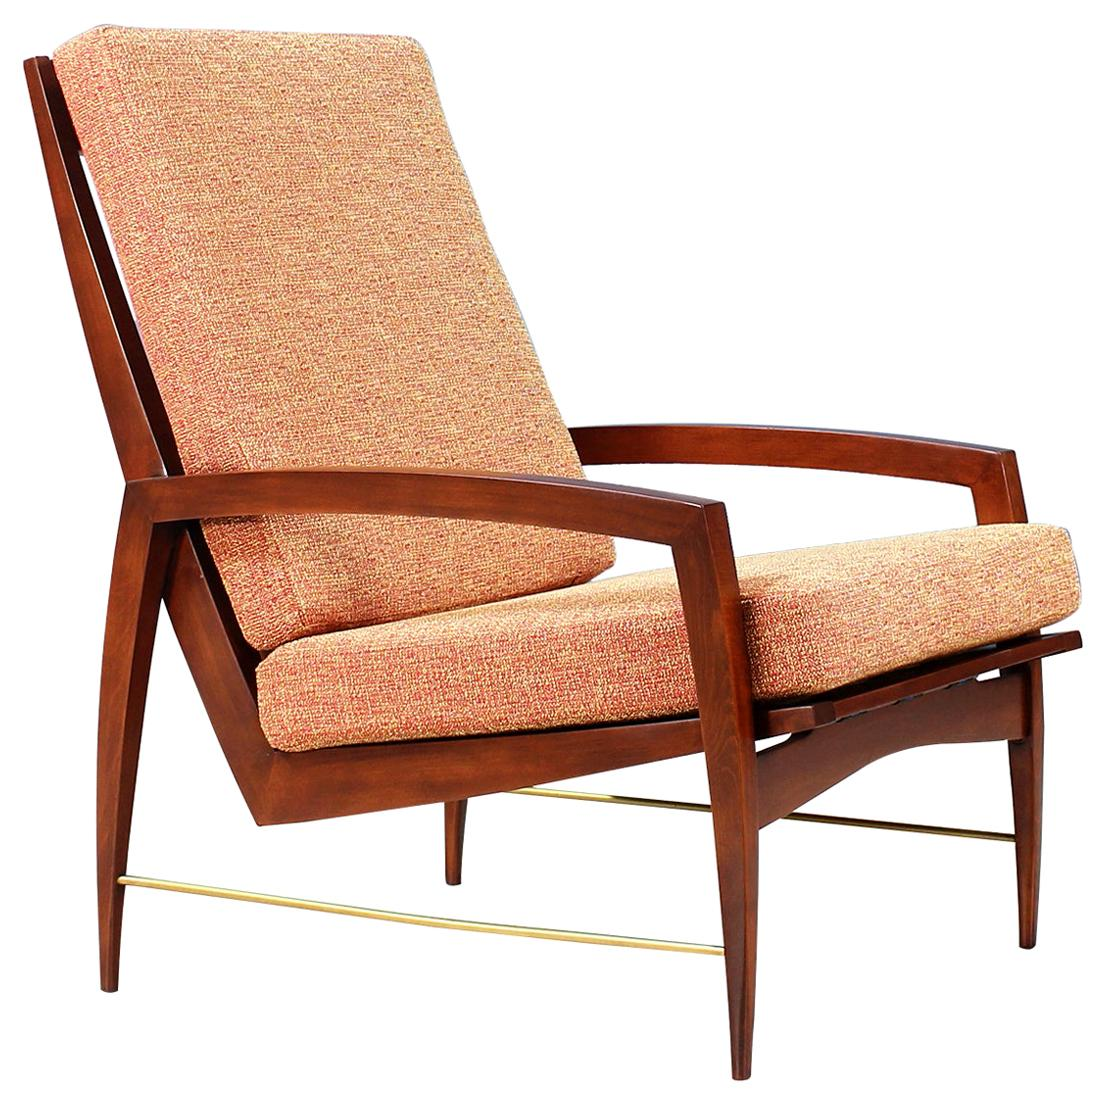 Danish Modern High-Back Lounge Chair with Brass Accents